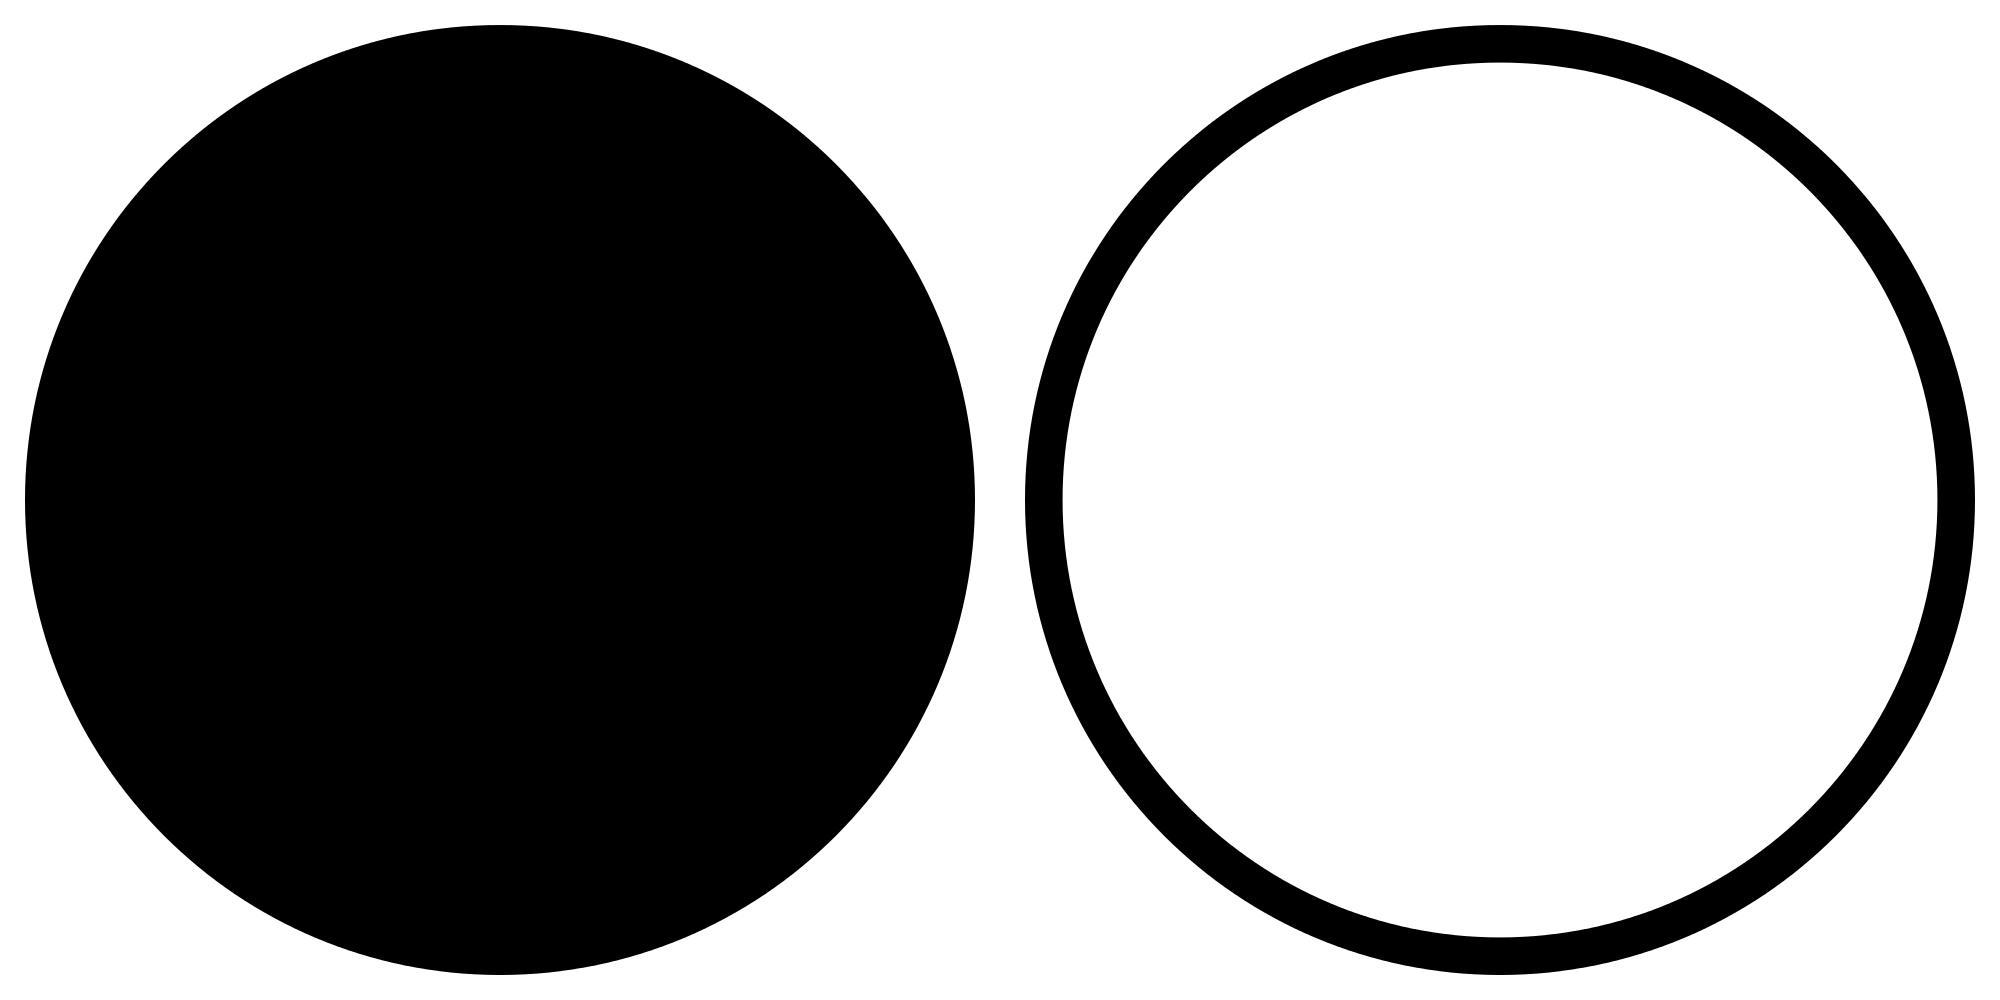 Circle clipart black and white, Circle black and white Transparent.